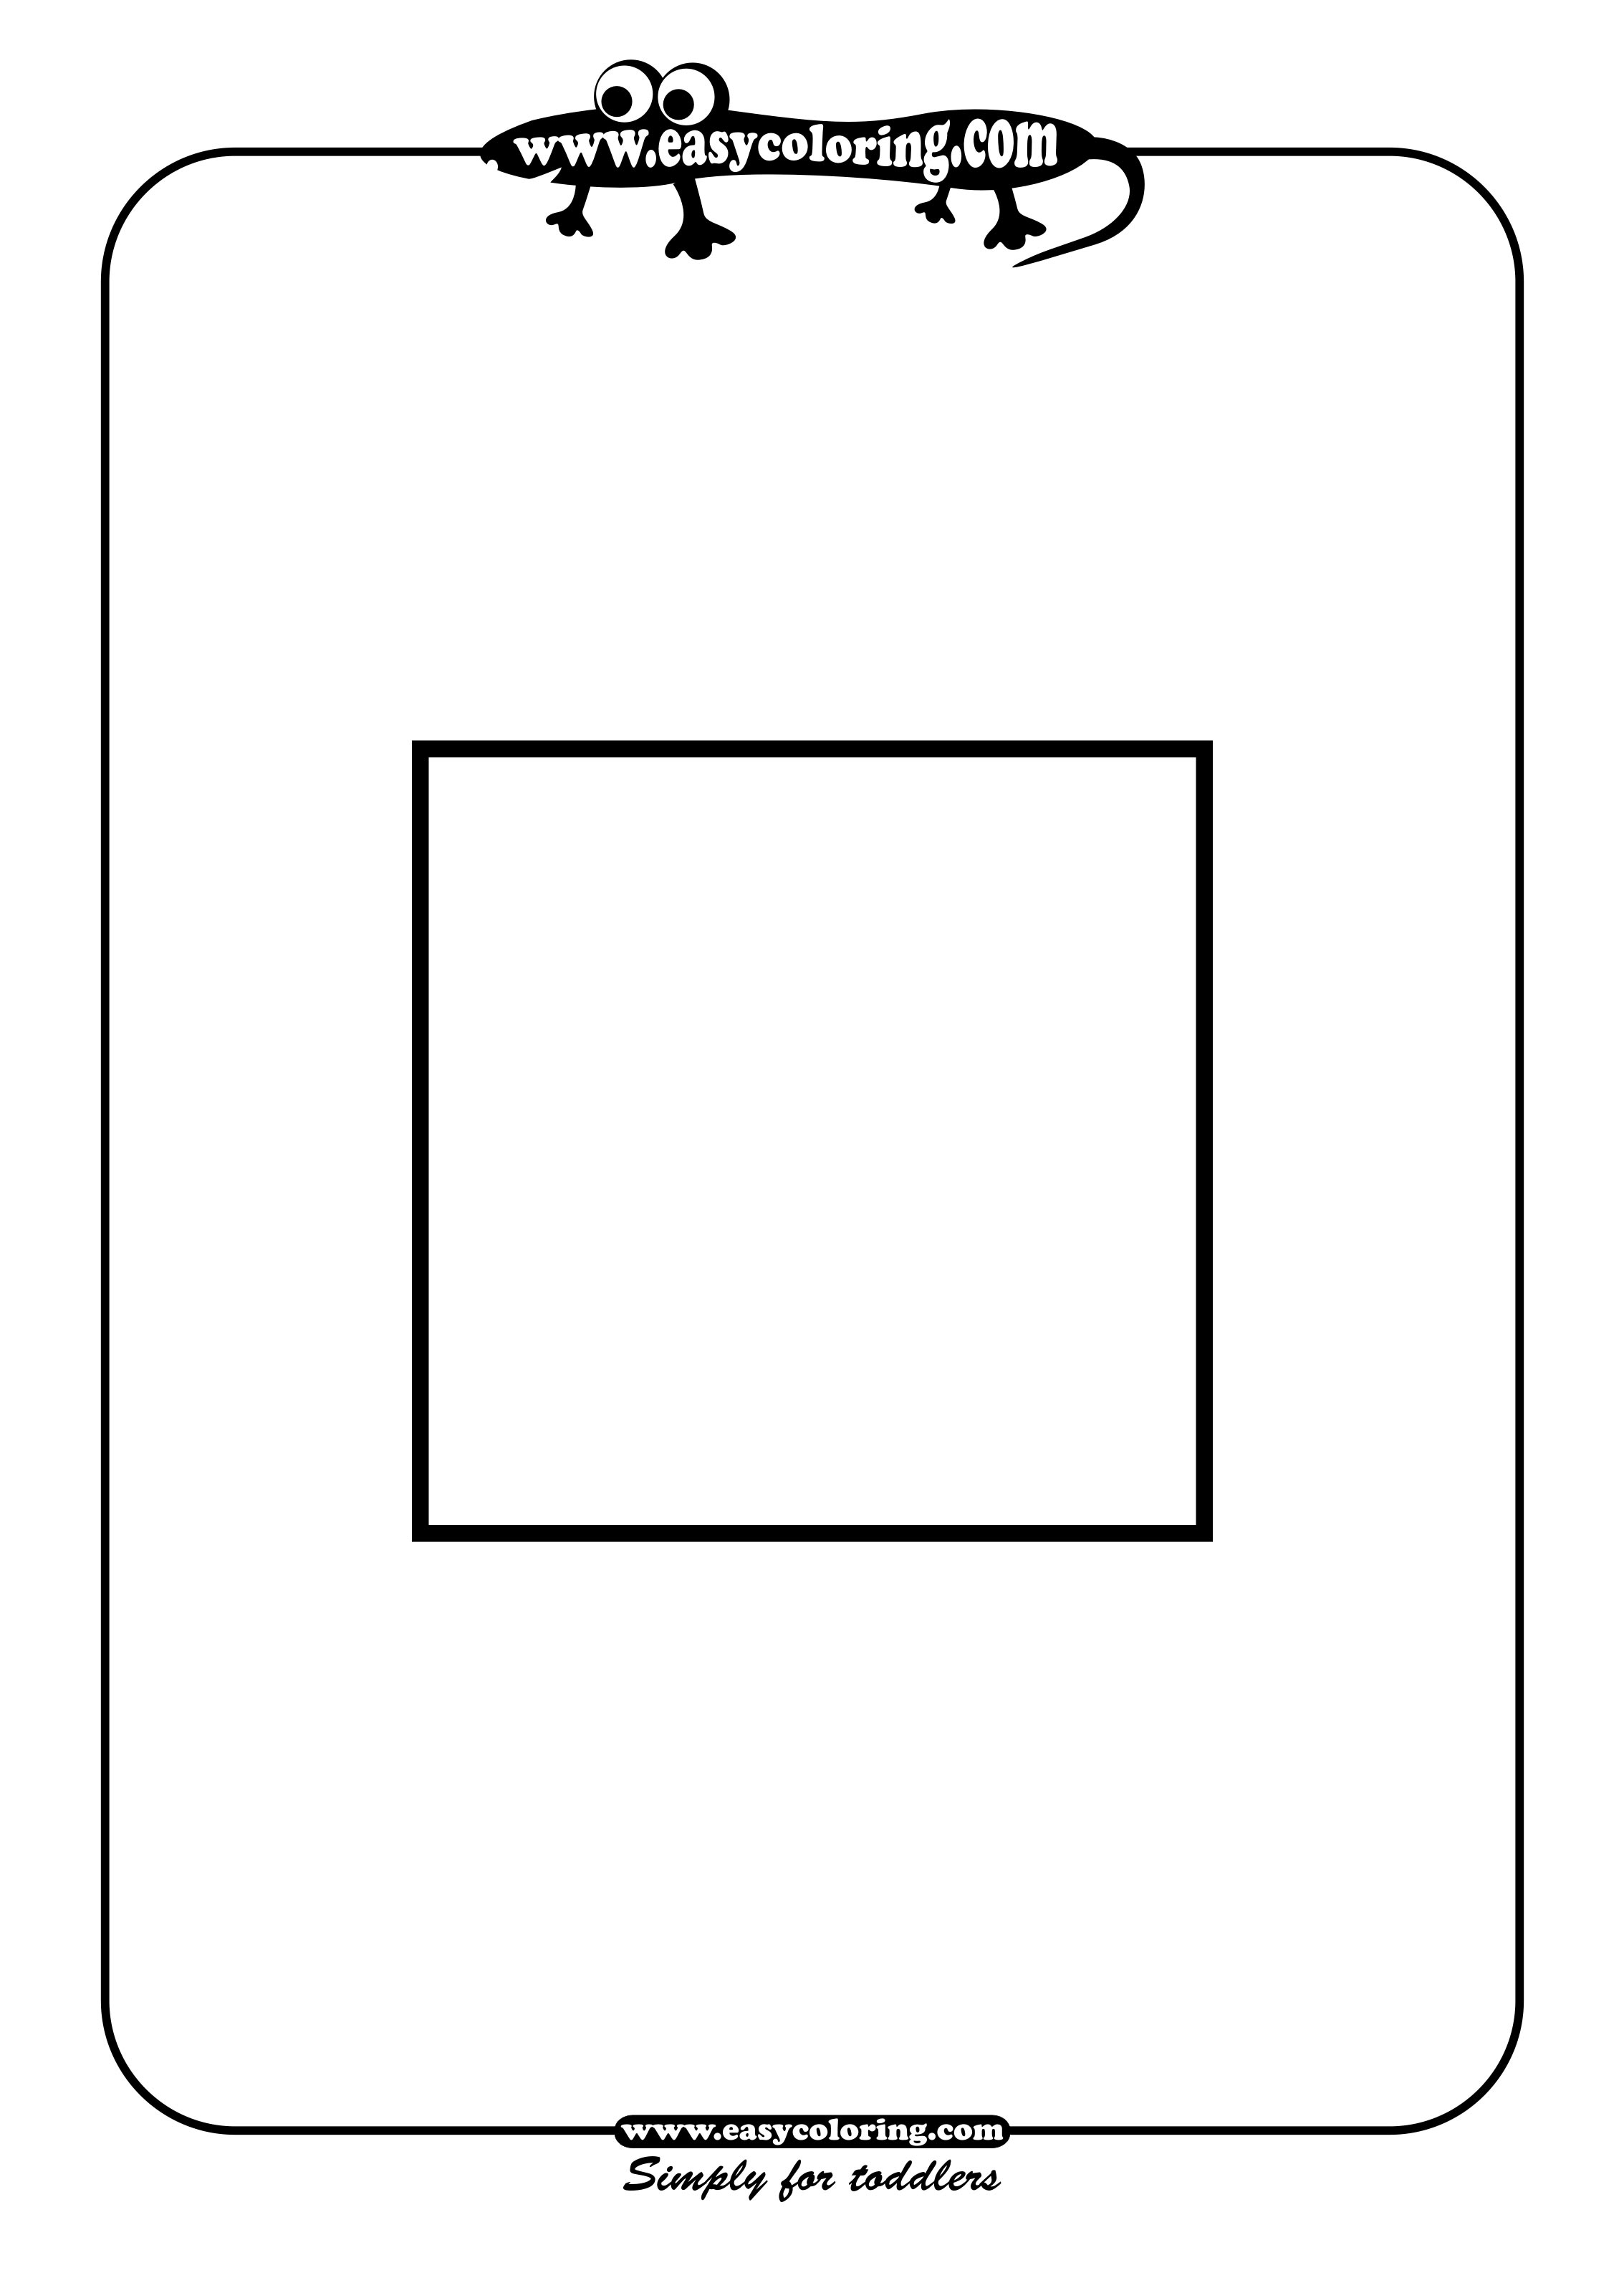 Square - Simple shapes | Easy coloring pages for toddlers